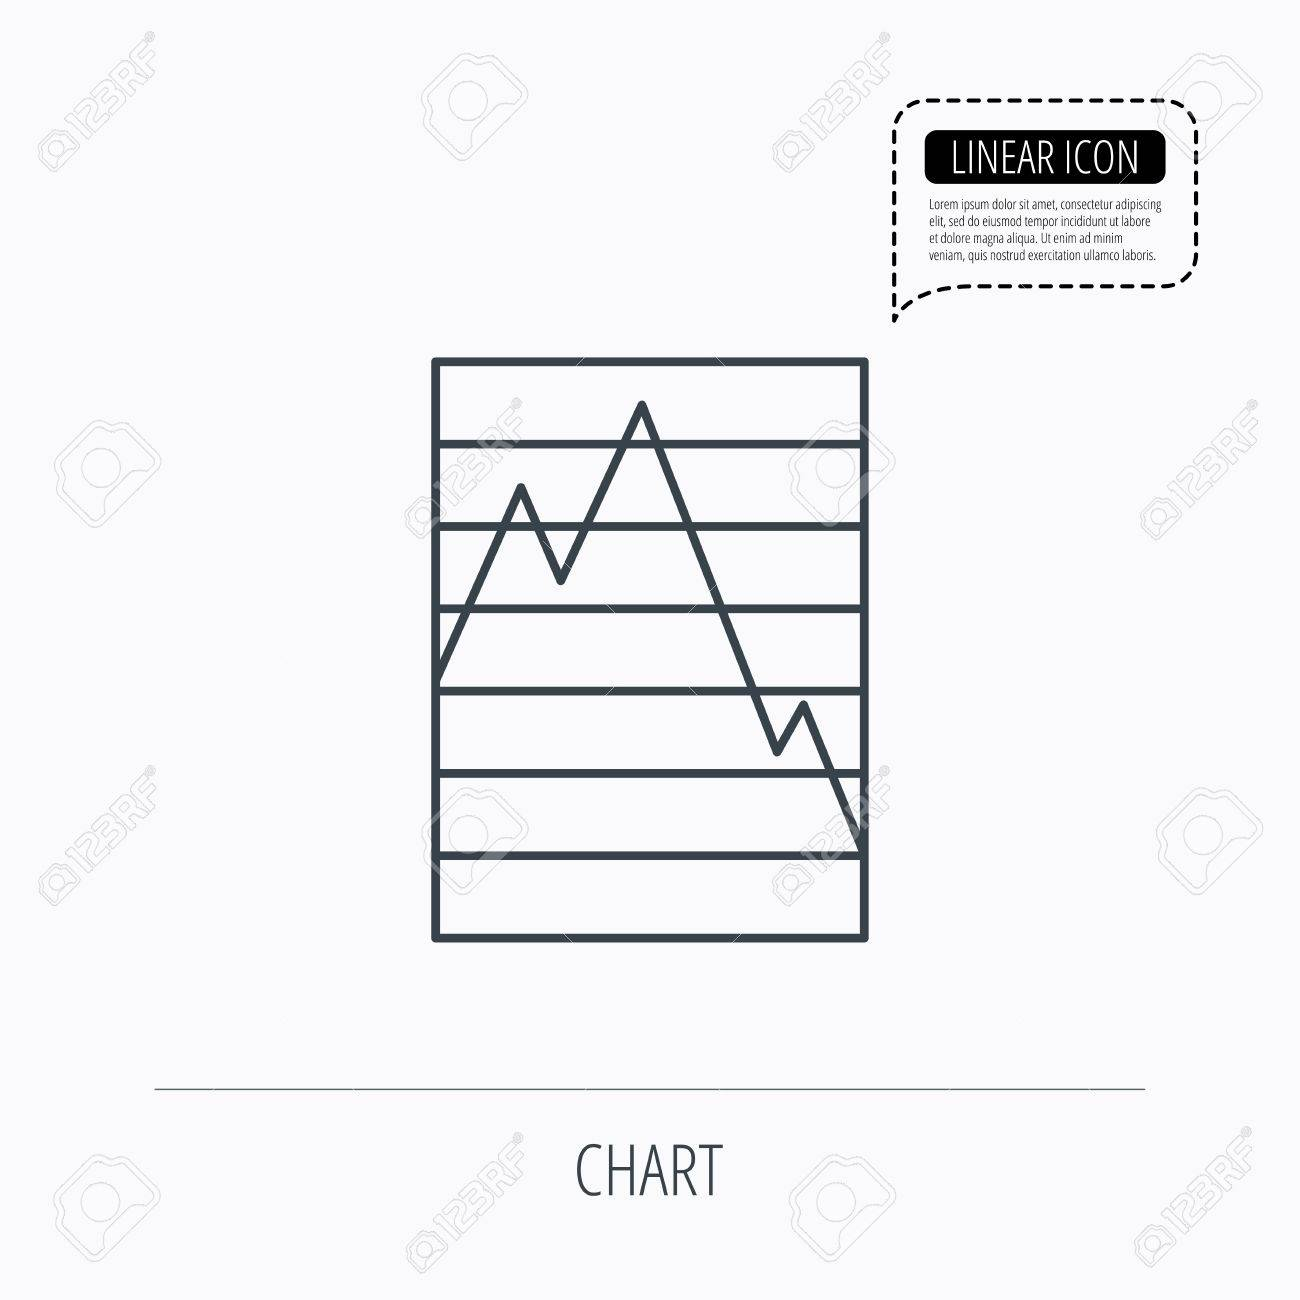 Chart curve icon graph diagram sign demand reduction symbol chart curve icon graph diagram sign demand reduction symbol linear outline icon geenschuldenfo Gallery